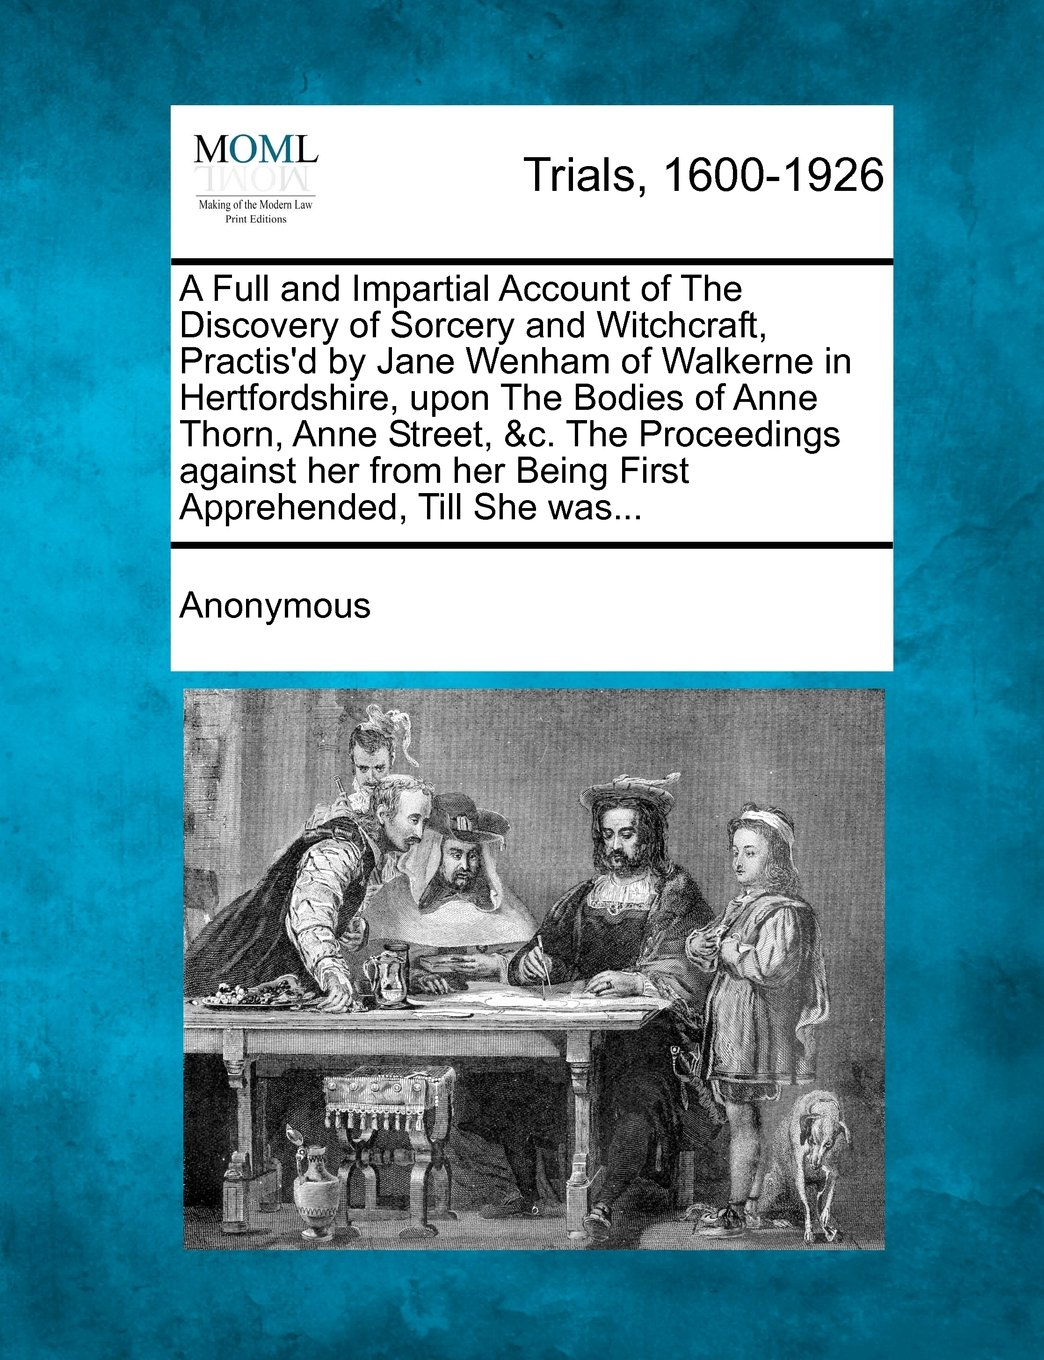 A Full and Impartial Account of The Discovery of Sorcery and Witchcraft, Practis'd by Jane Wenham of Walkerne in Hertfordshire, upon The Bodies of ... her Being First Apprehended, Till She was... PDF